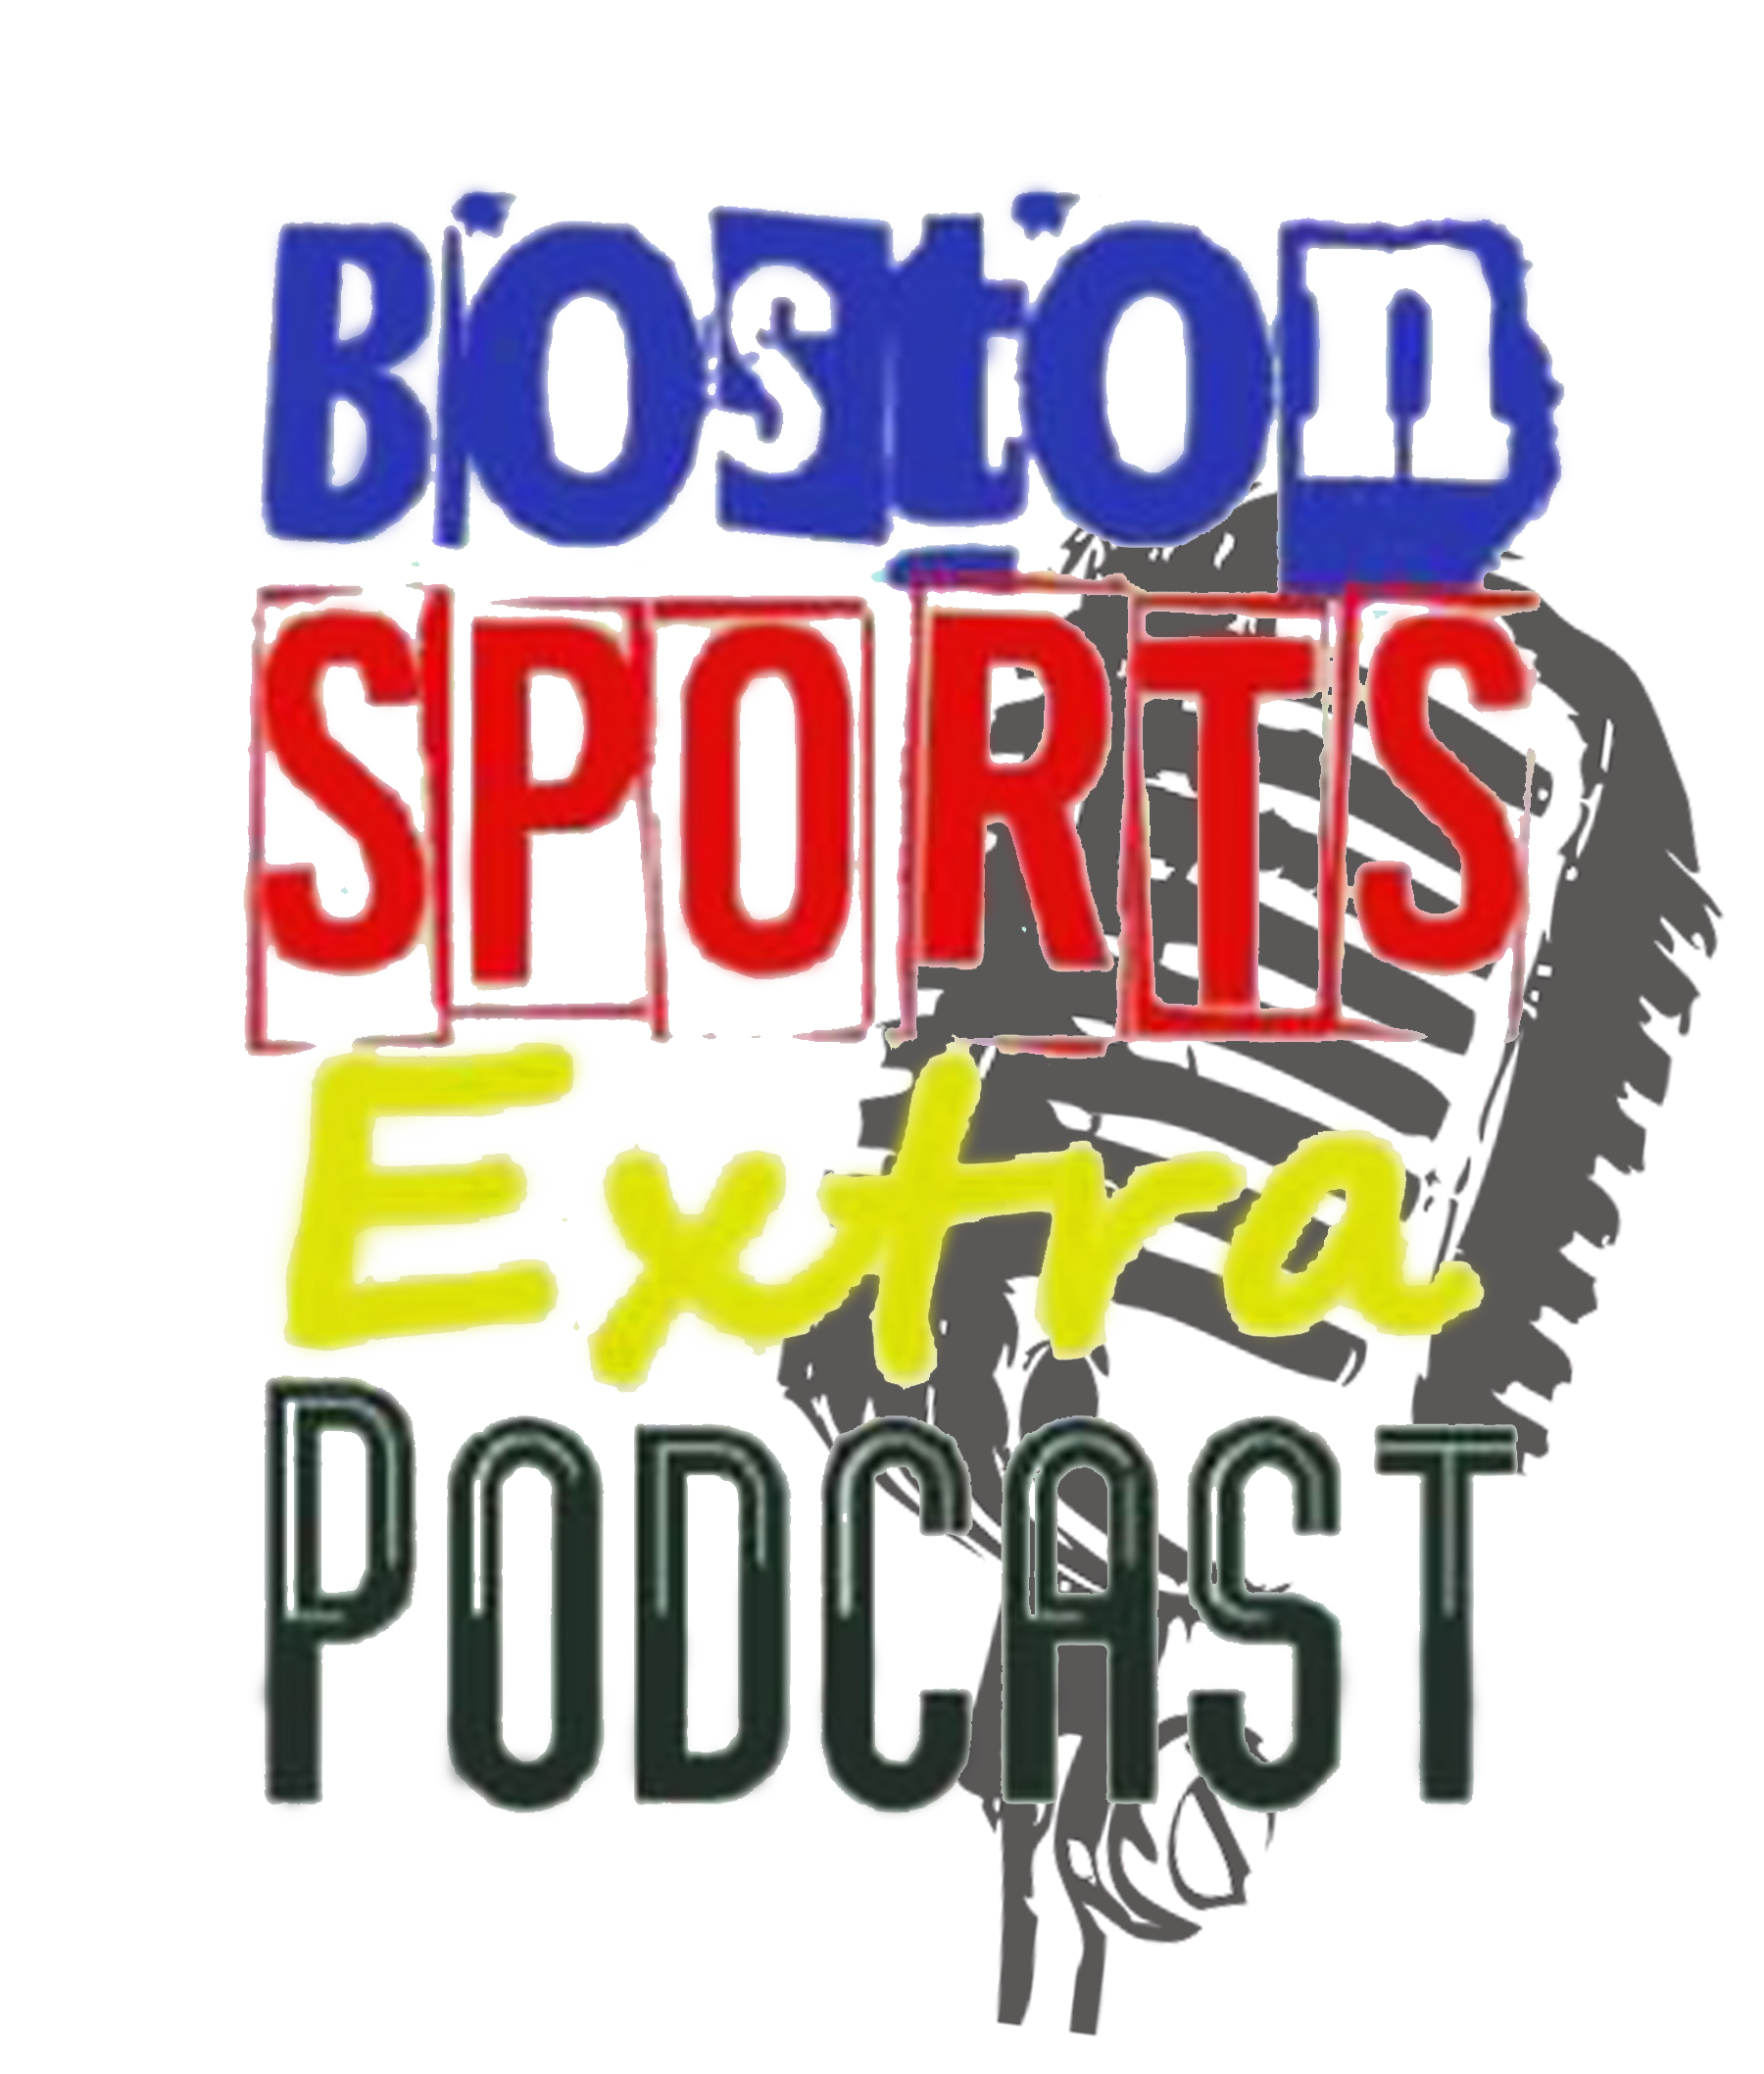 Bse-podcast-logo-w-mike